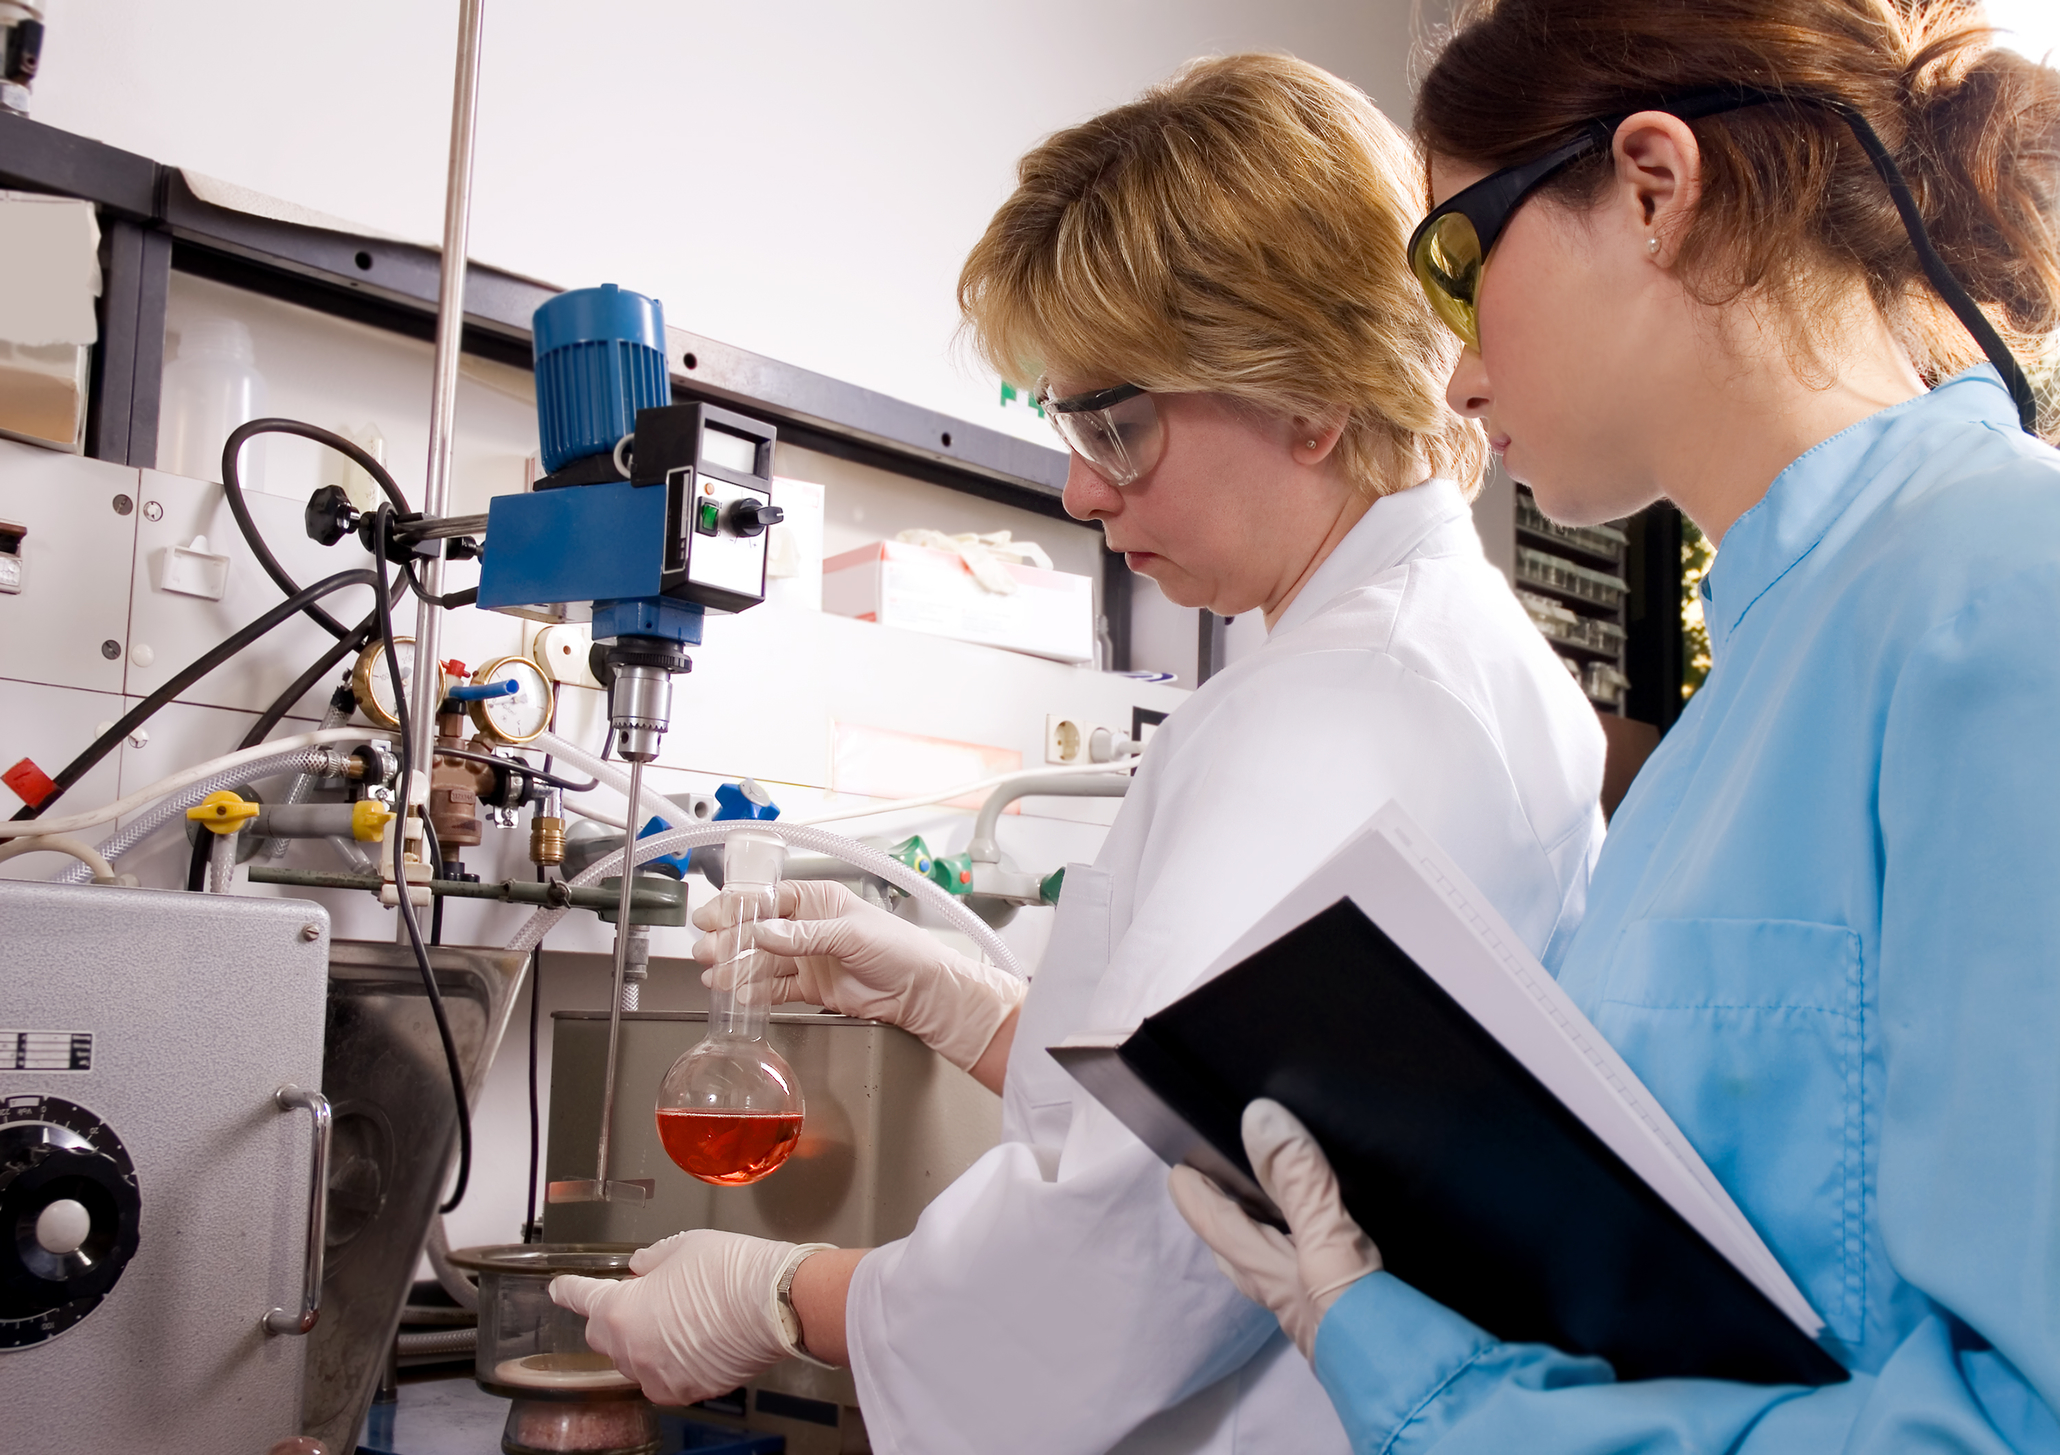 Professionals from educational institutions, companies, non-profits, and governments coming together to address expanding opportunities and systemic challenges.